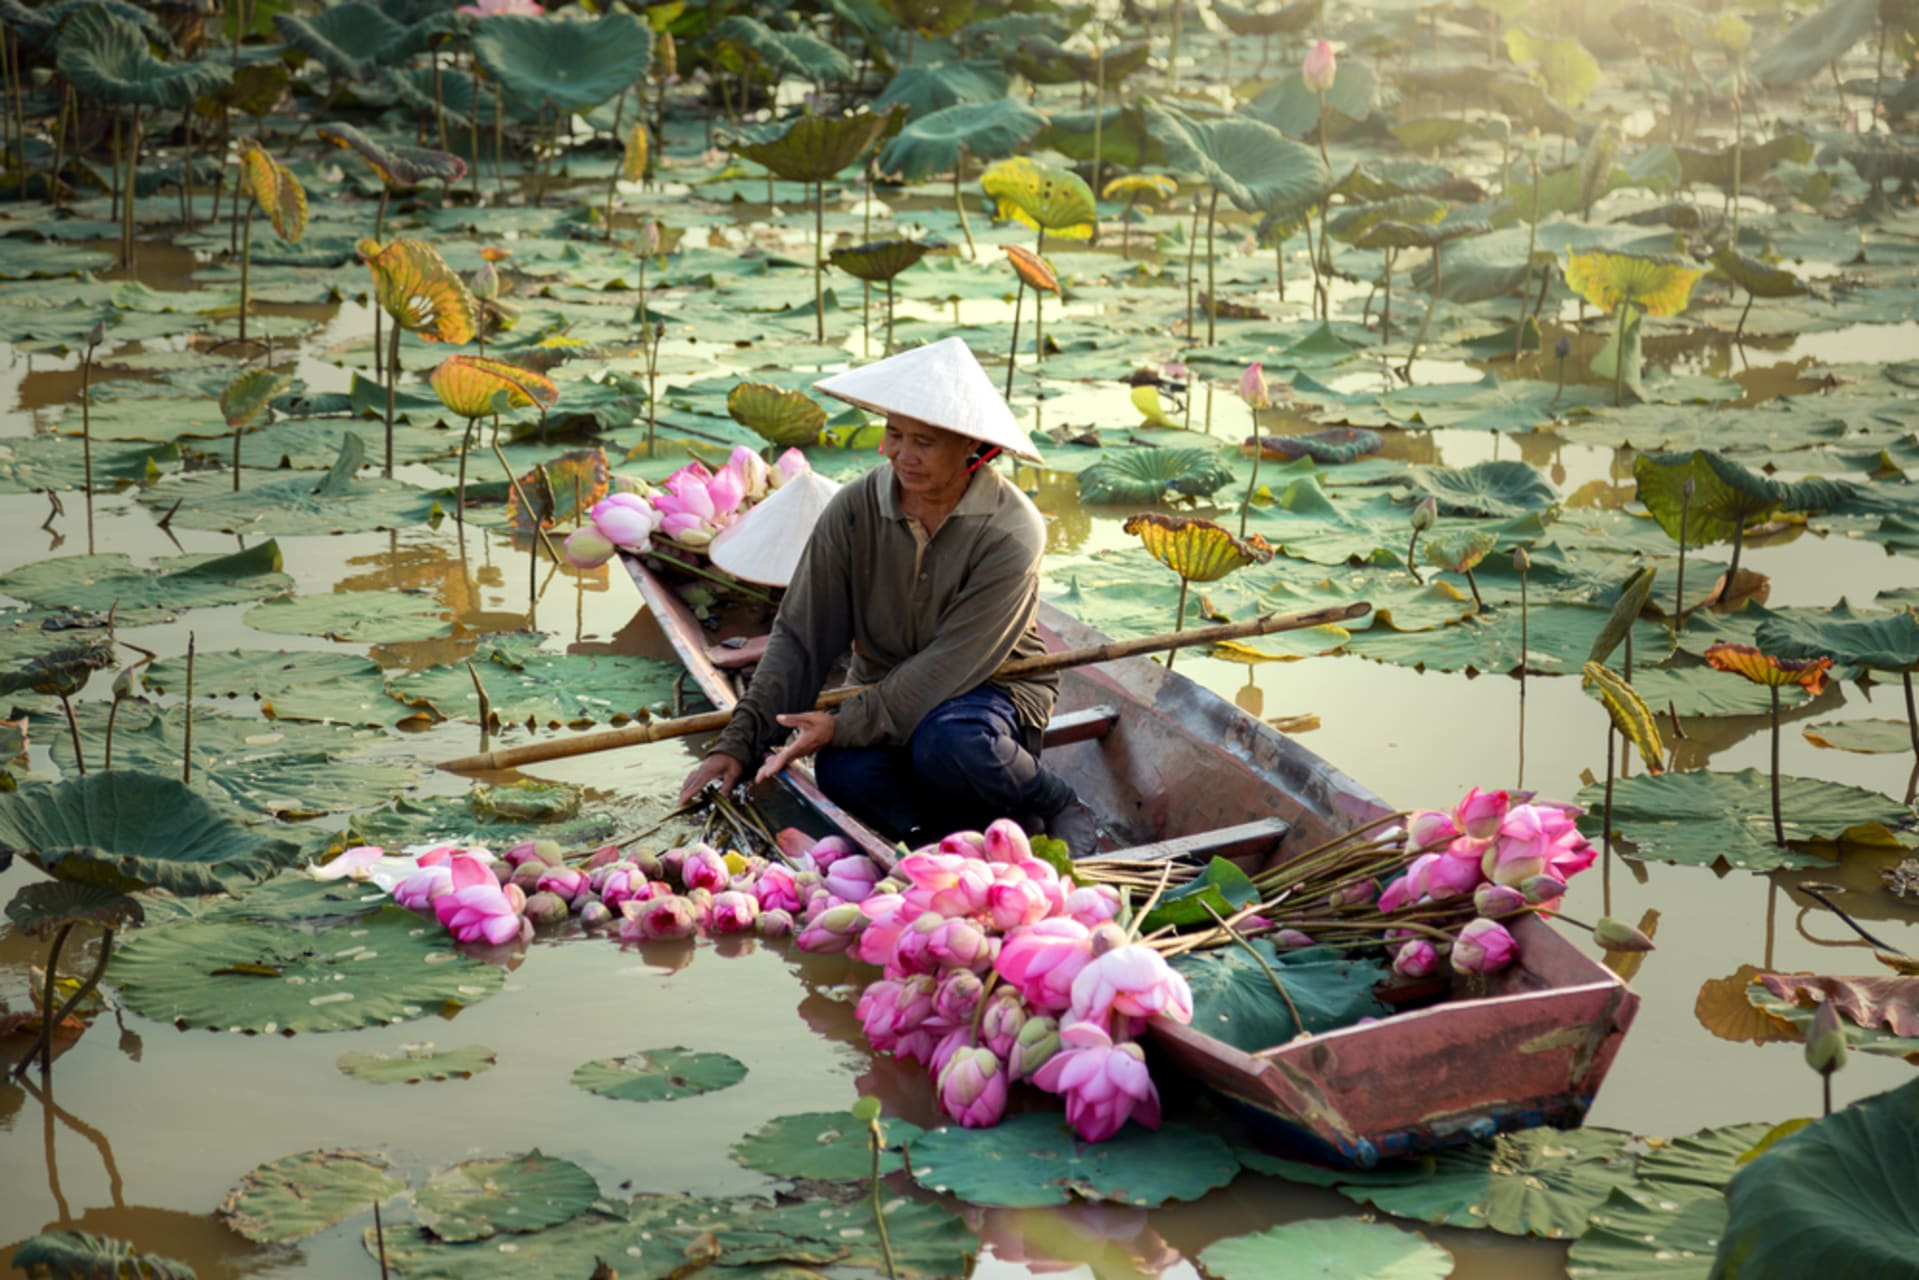 Hue - Hidden Huế - Day 5: Lotus Is Not Just Pretty